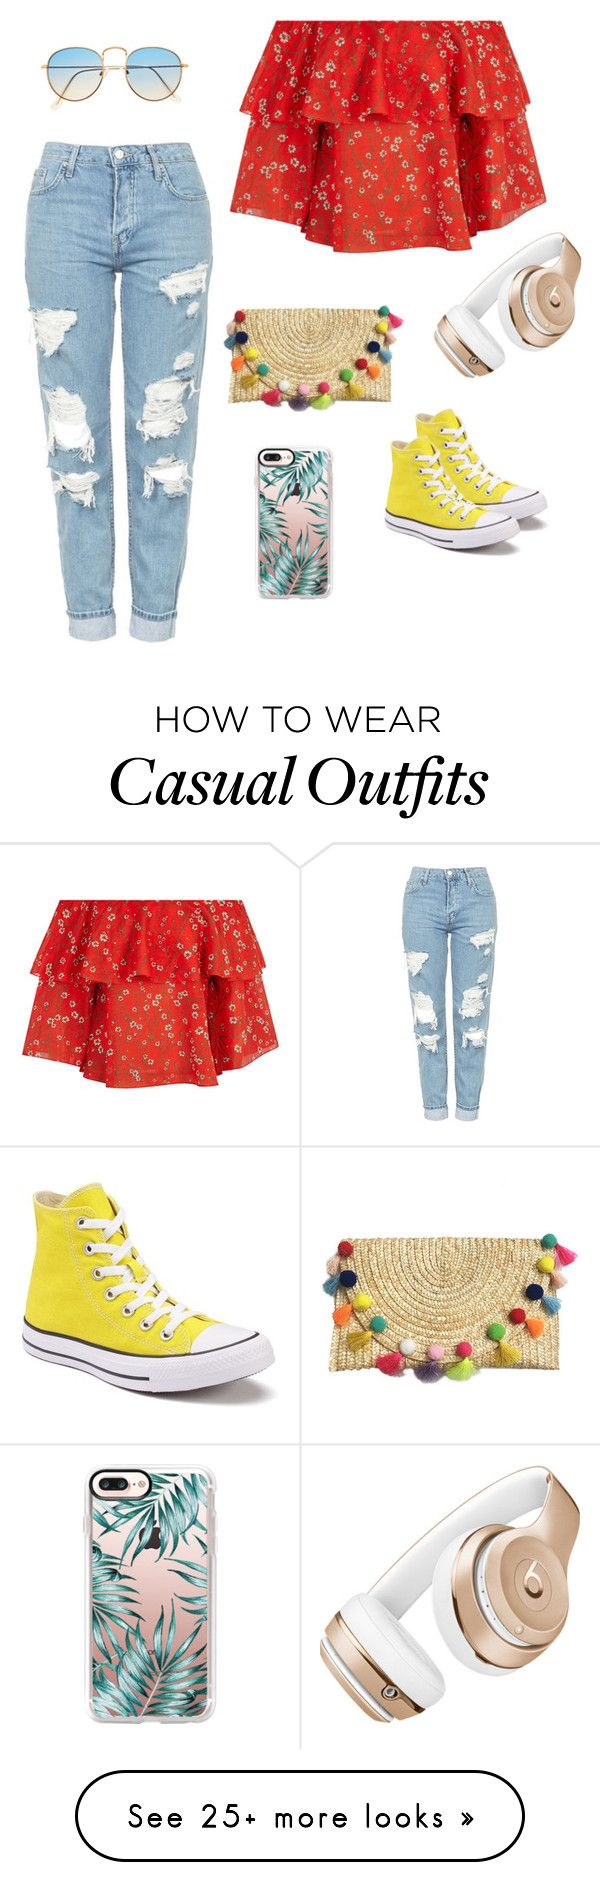 """""""Classy & Casual"""" by ballrebca on Polyvore featuring Alice + Olivia, Topshop, Converse, Beats by Dr. Dre and Casetify"""